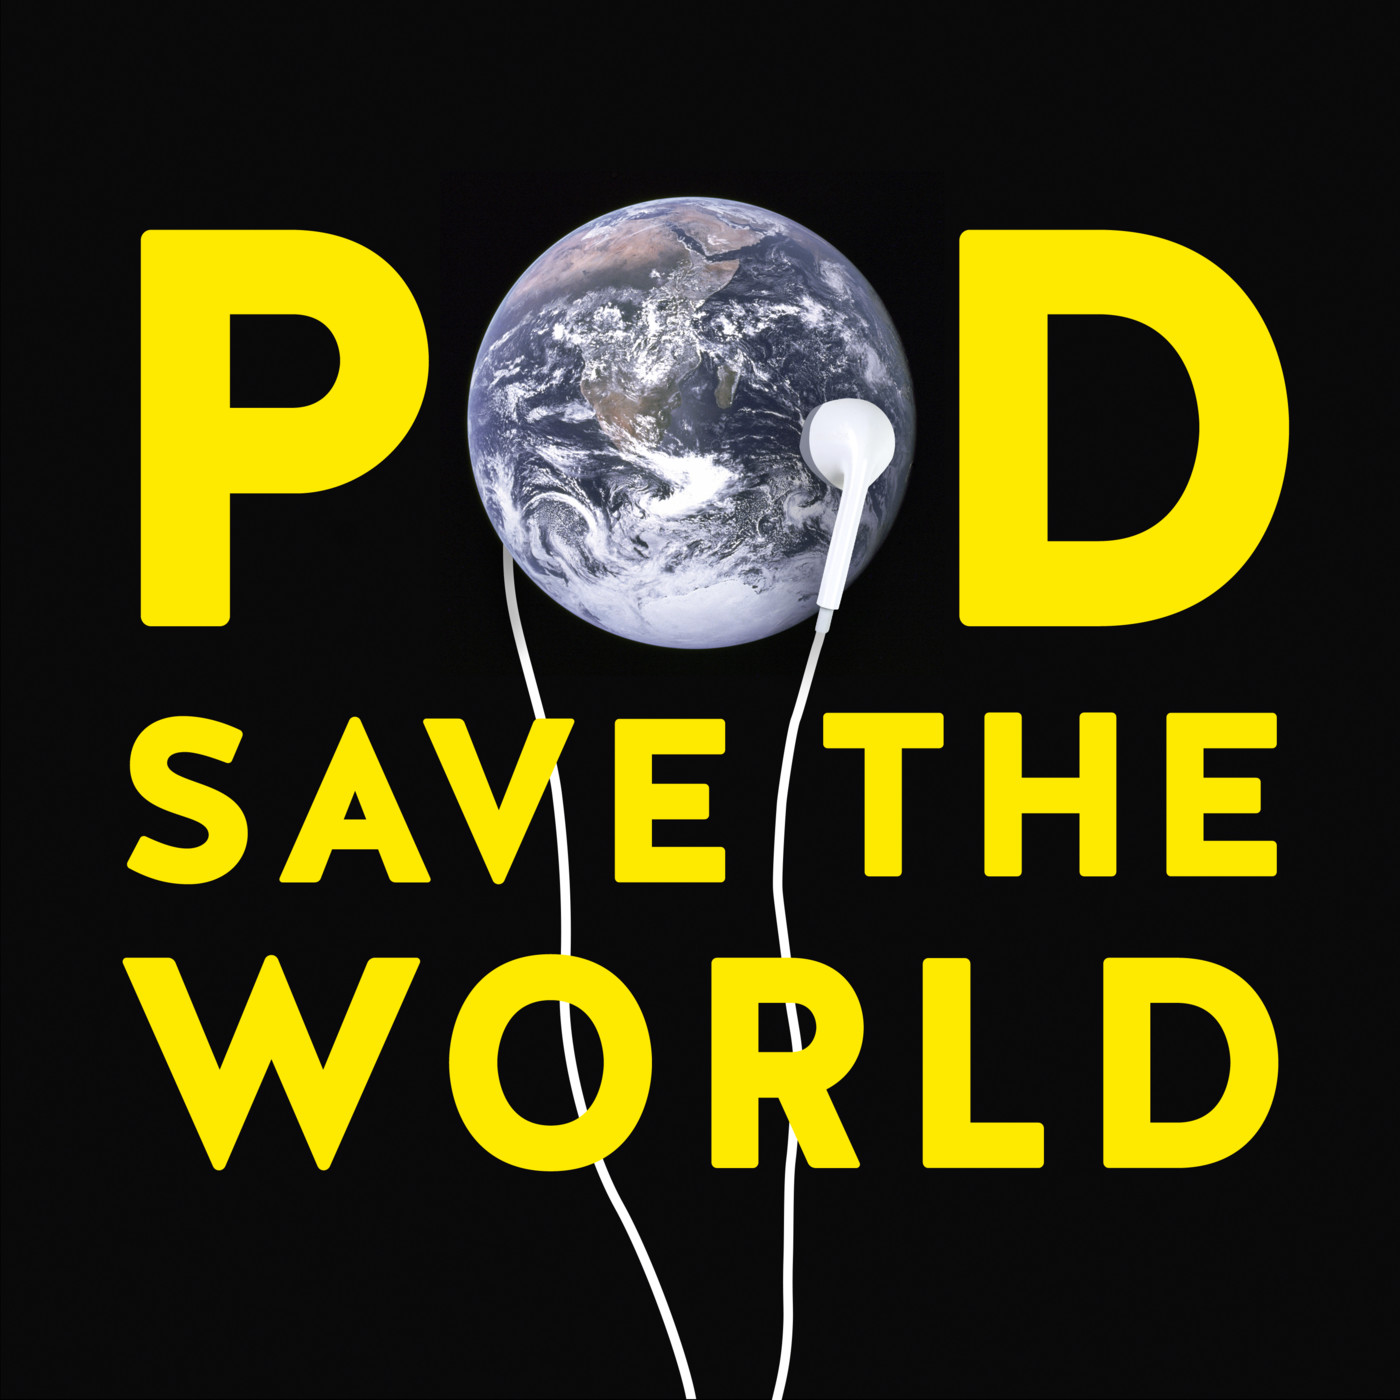 pod save the world by crooked media on apple podcasts